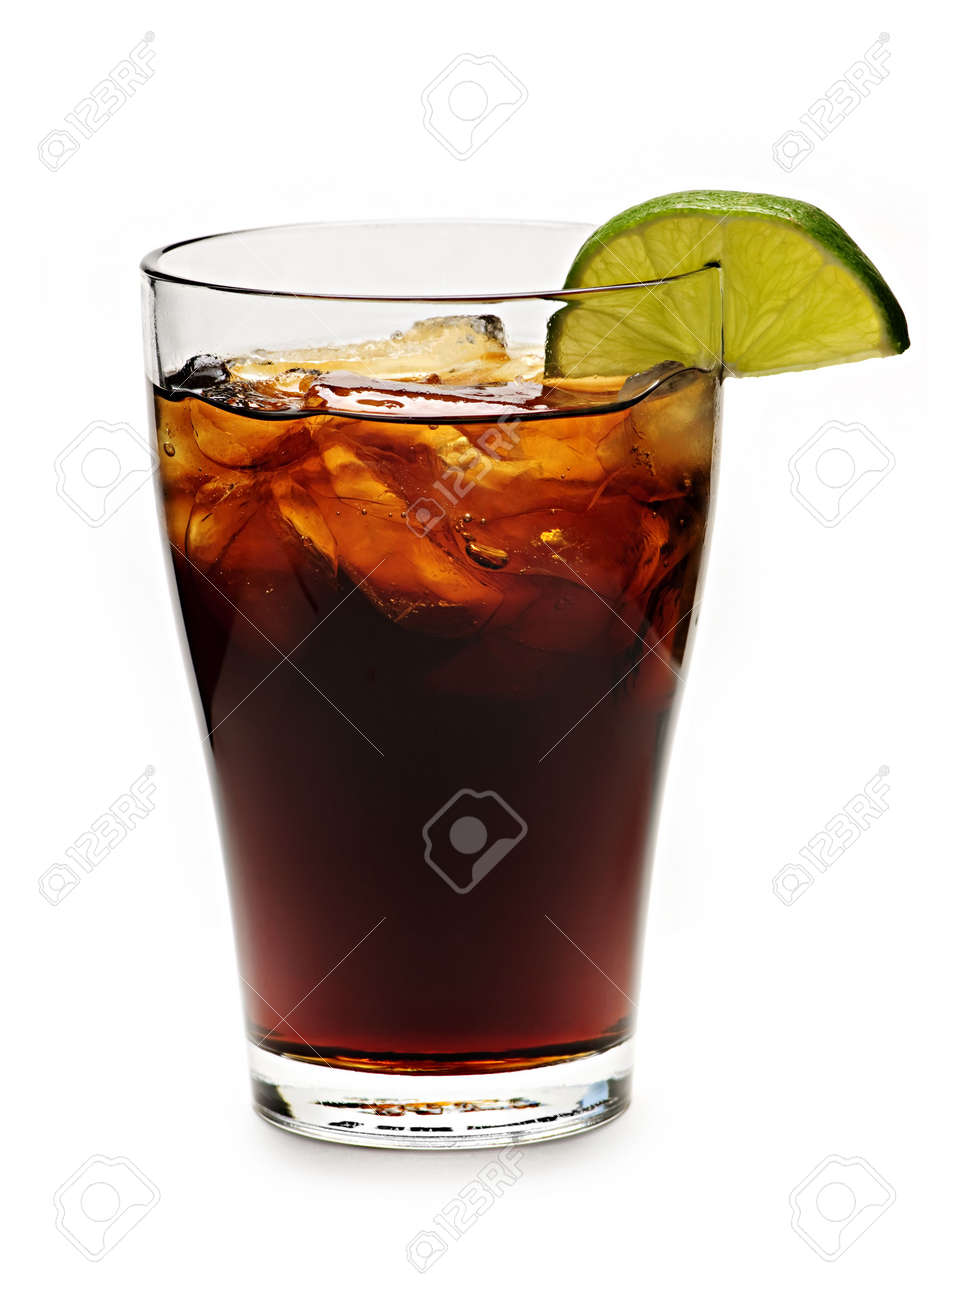 Glass of cola with ice and lime isolated on white background Stock Photo - 5801308